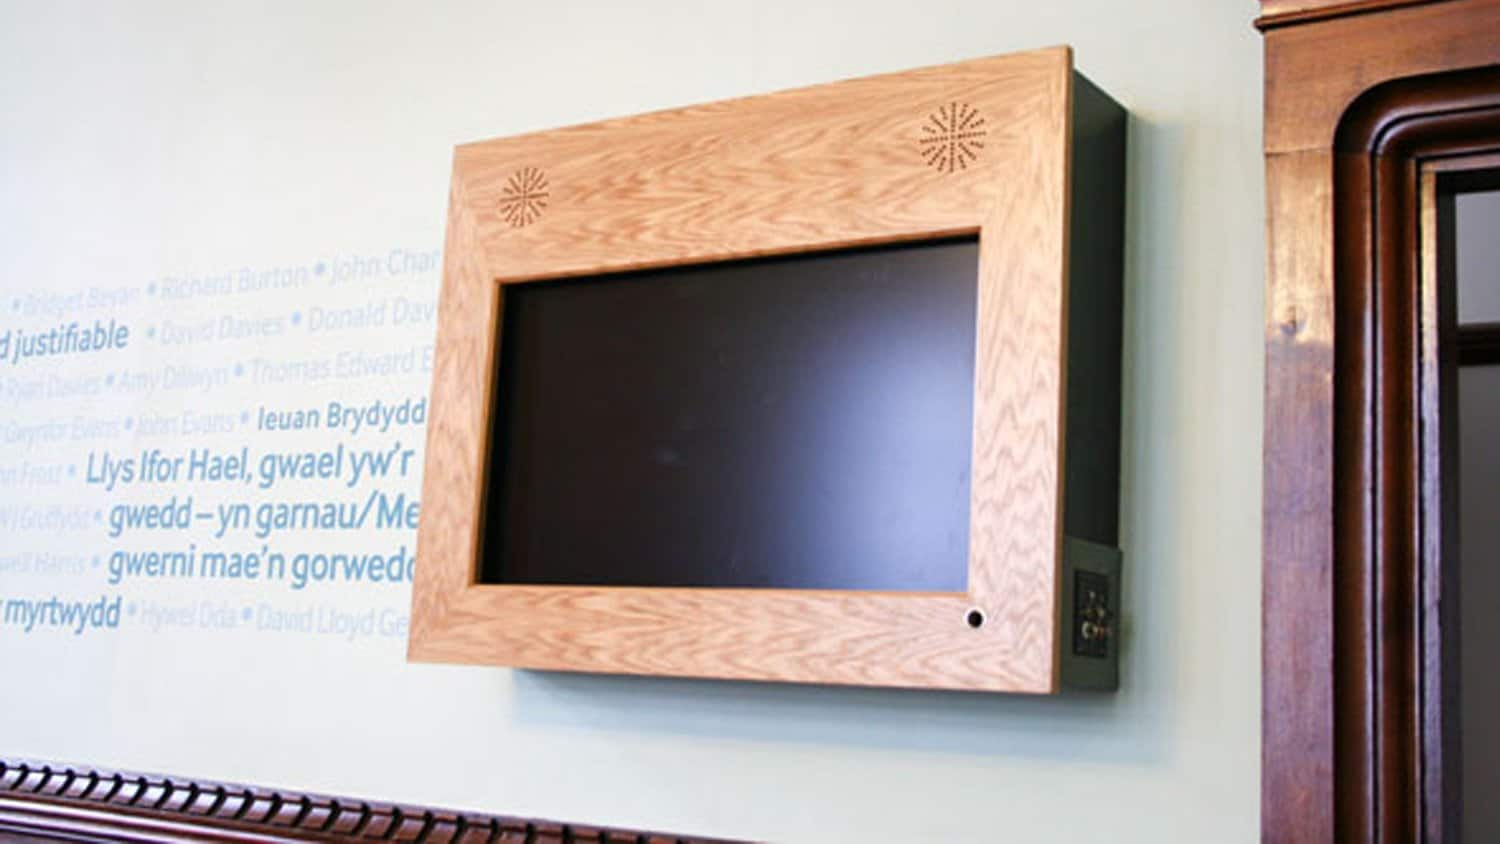 Specialist-Screen-by-Blackbox-av-for-Pierhead-Building